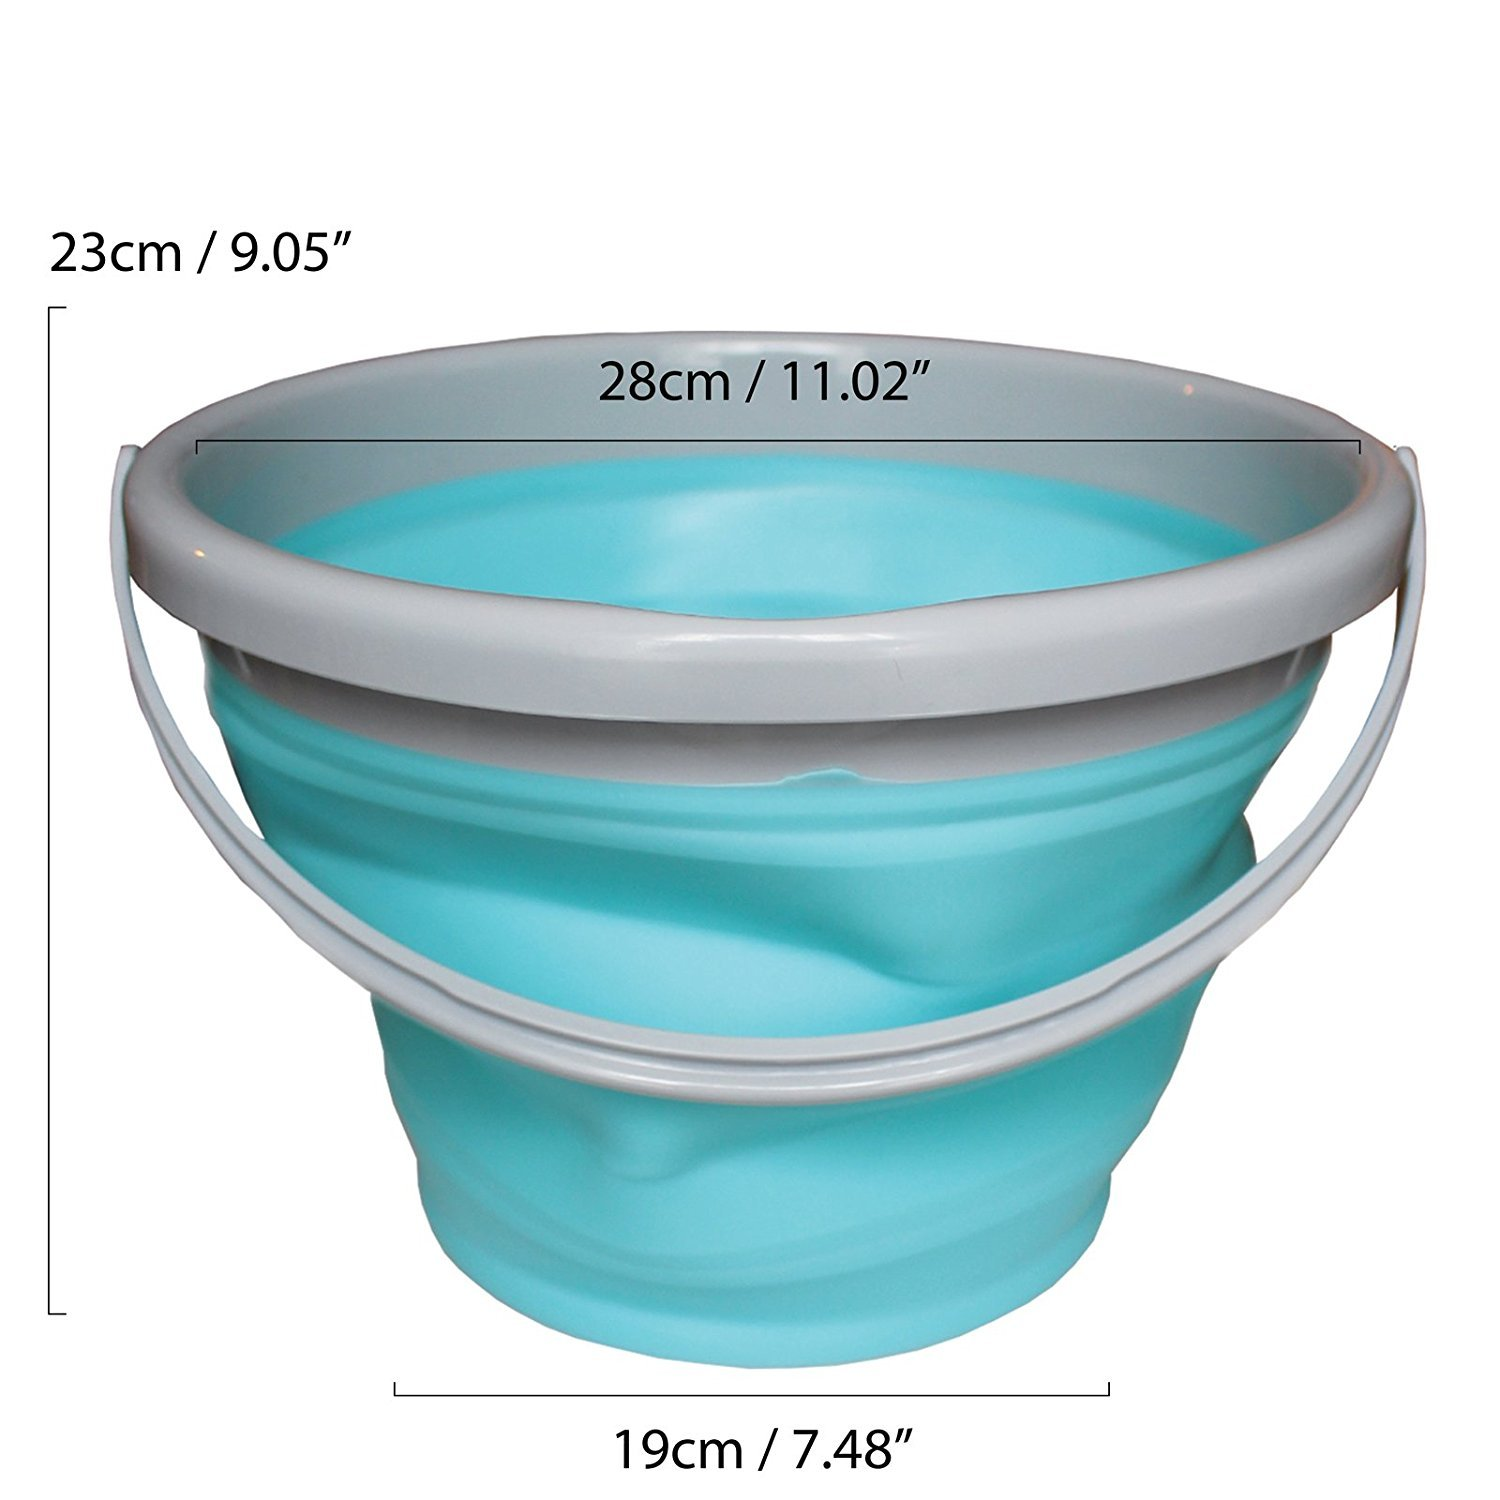 10 Litre Silicone Plastic Collapsible Folding Water Bucket by Kurtzy - 2.5 Gallon Foldable Pail for Fishing, Camping, Backpacking and Car Washing - Large Bucket Basin with Carry Handle MA-6082A